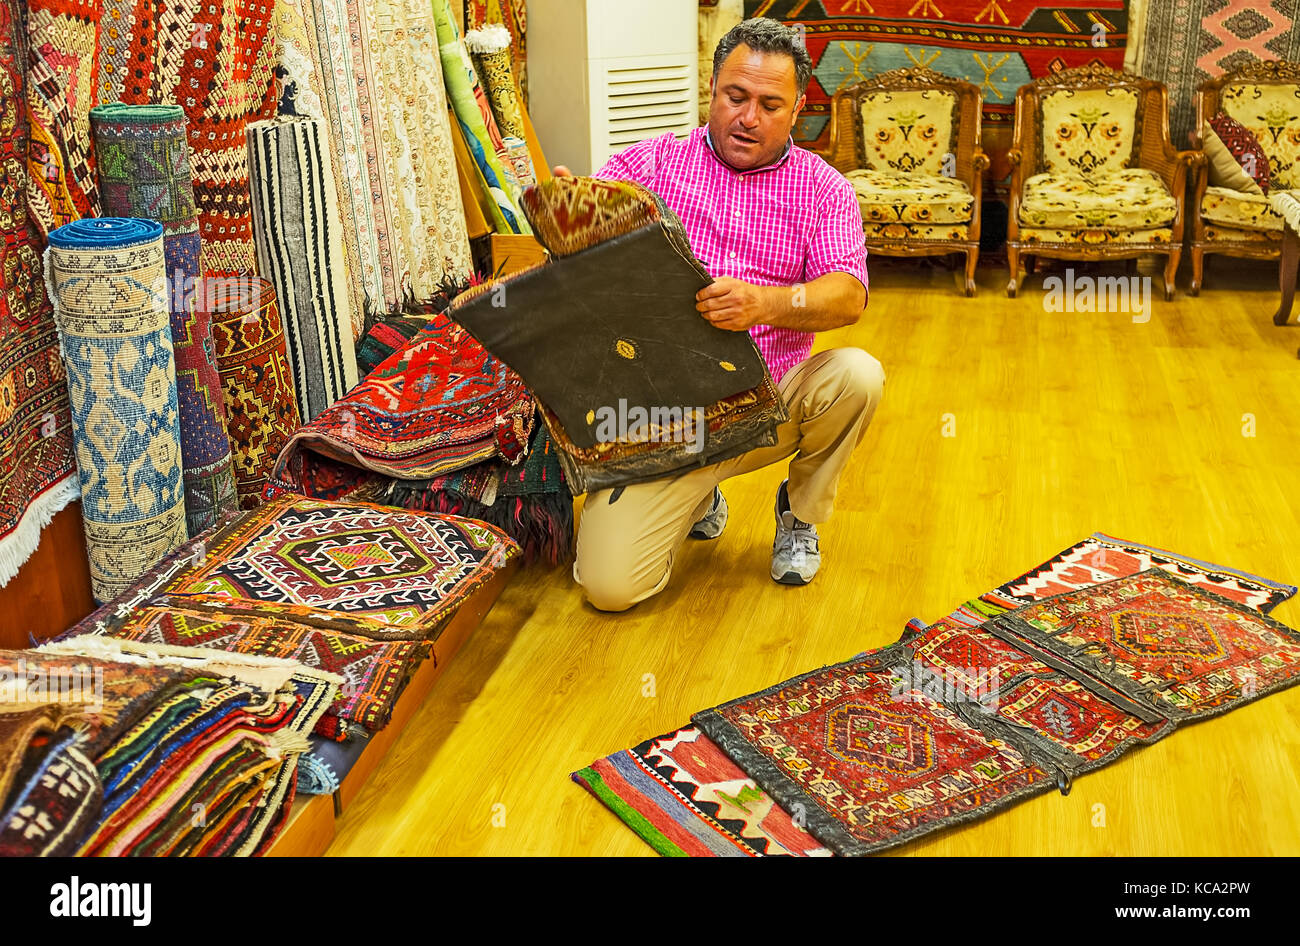 ANTALYA, TURKEY - MAY 12, 2017: The vendor of carpet store demonstrates the antique hand knotted camel saddle bags, - Stock Image